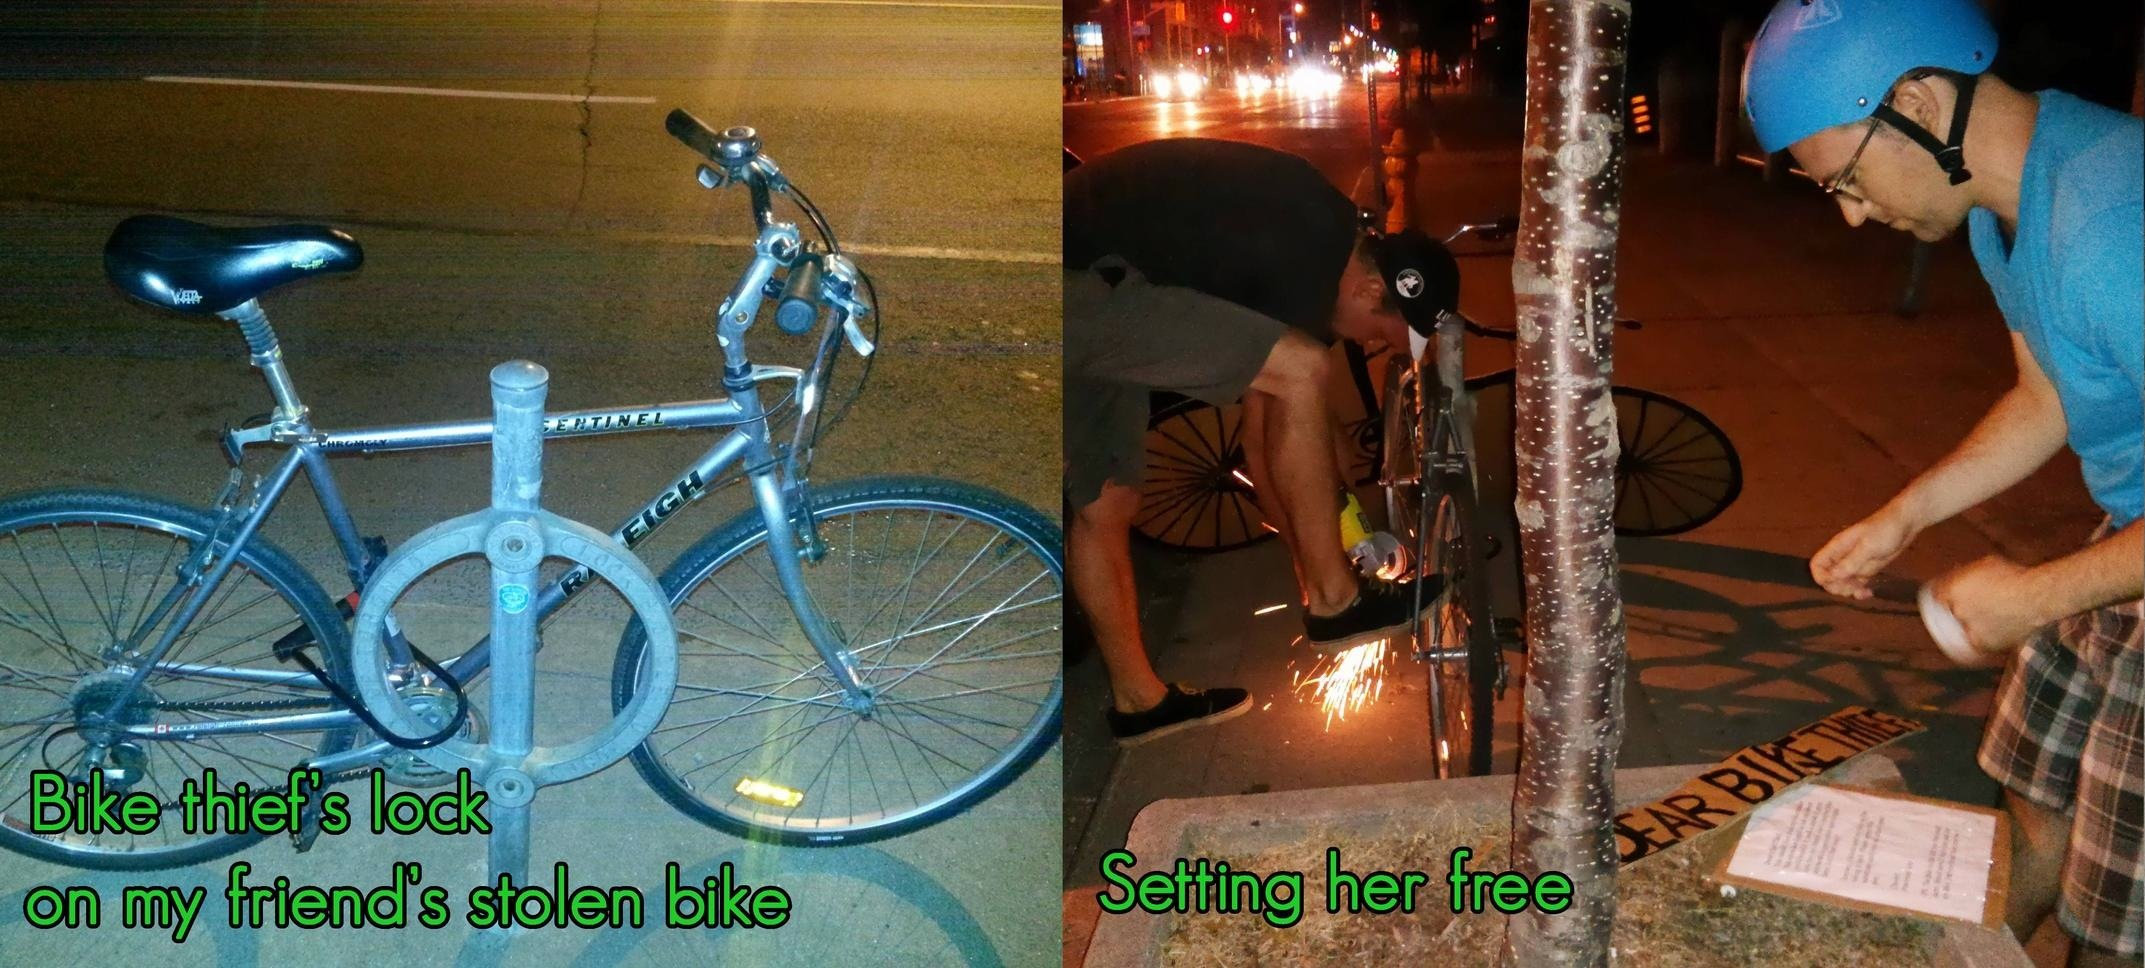 A guy found his stolen bike locked up on the street. So he stole it back and left an awesome note for the thief.